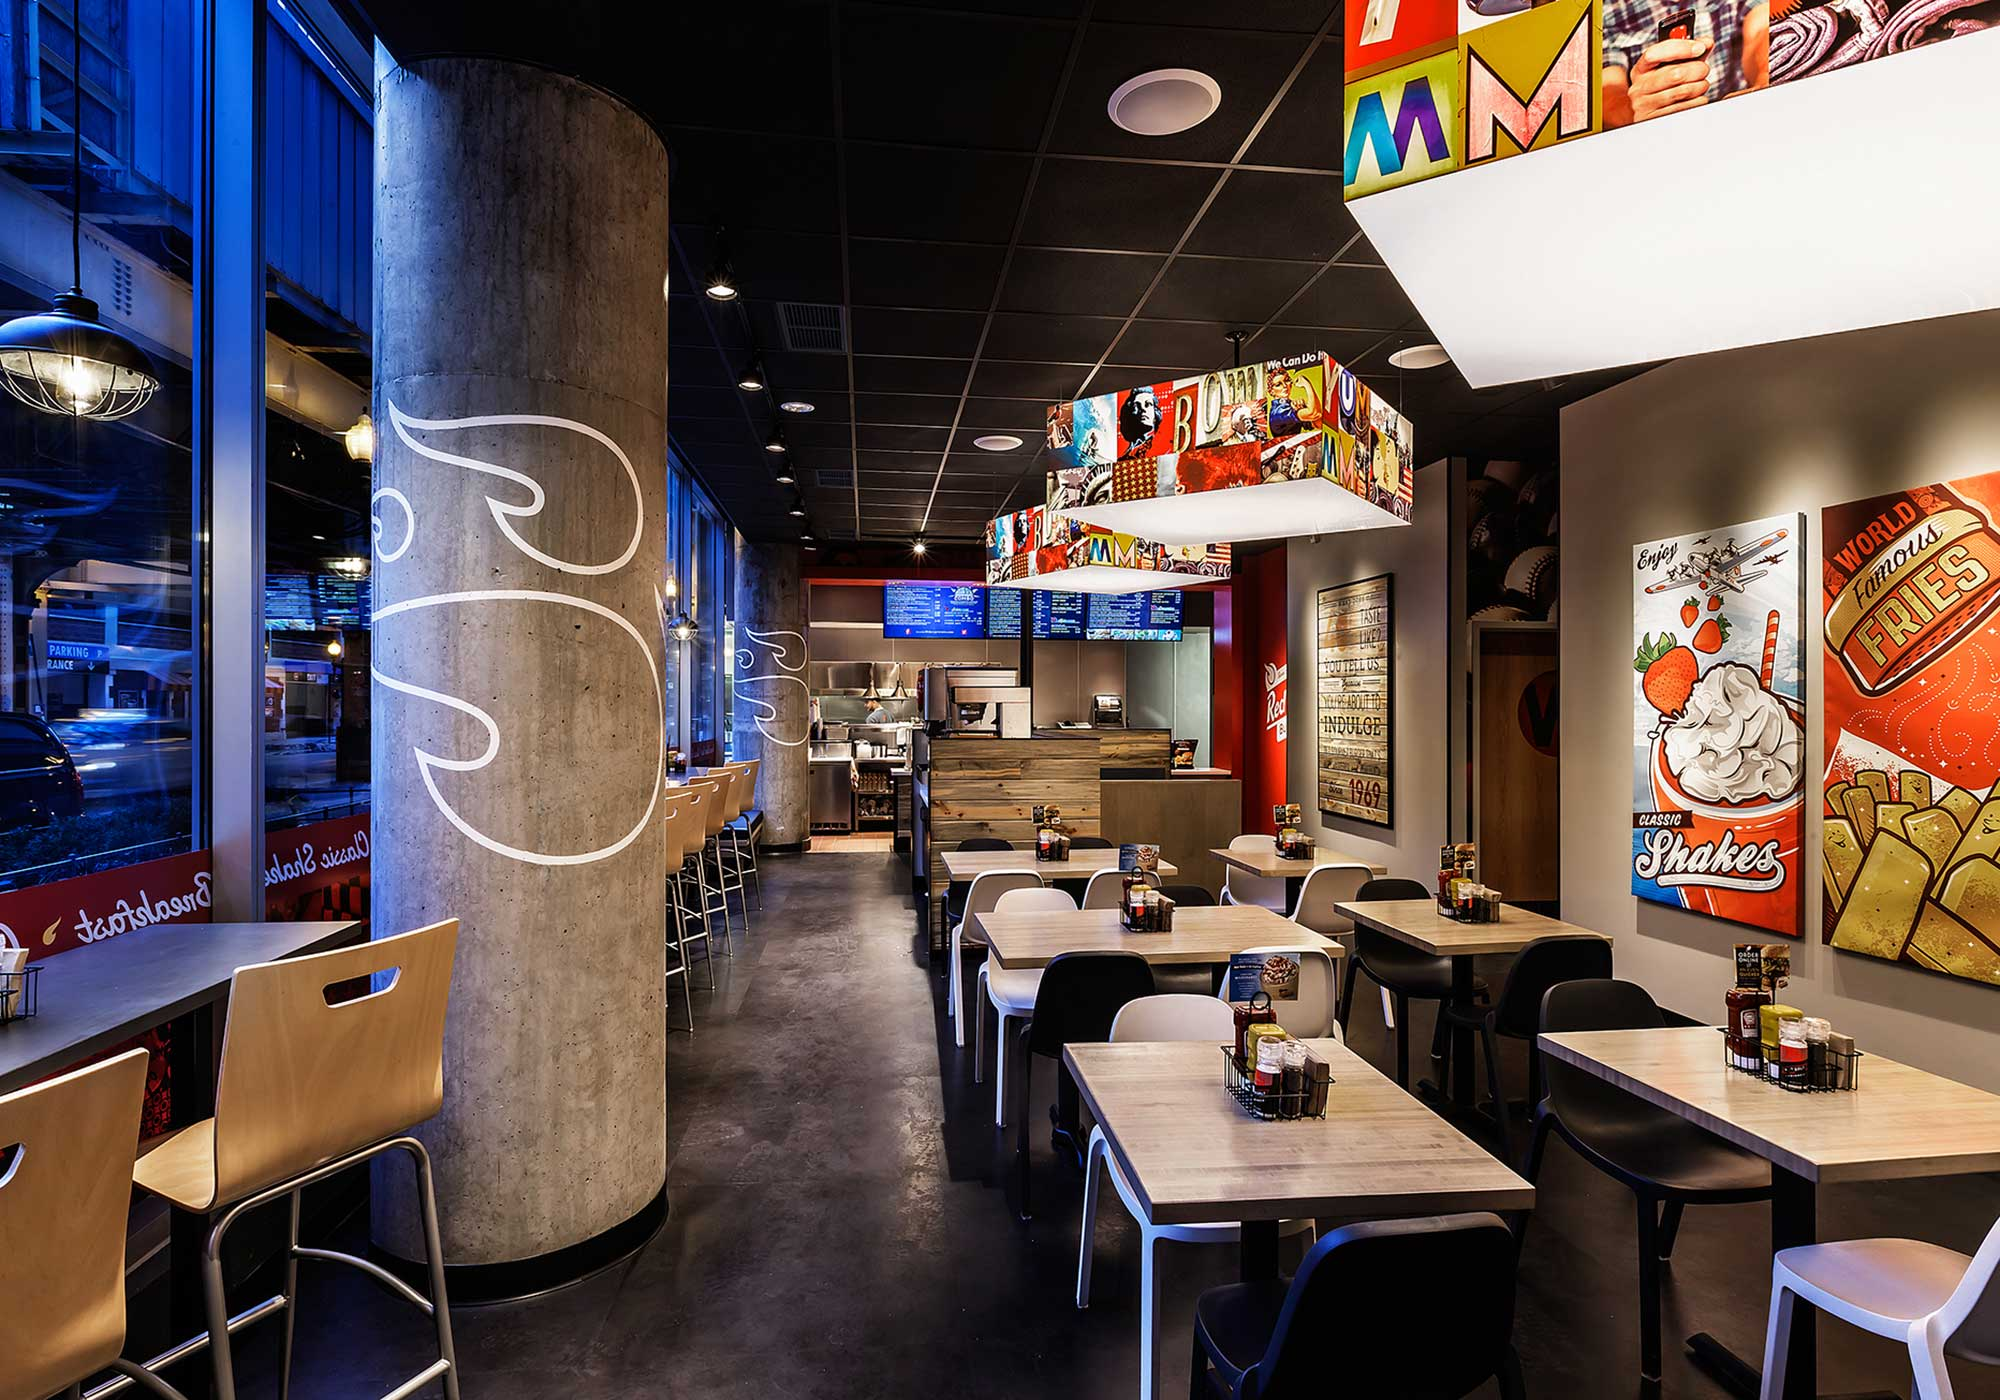 Dining room with art on the walls and light fixtures with pop art covers